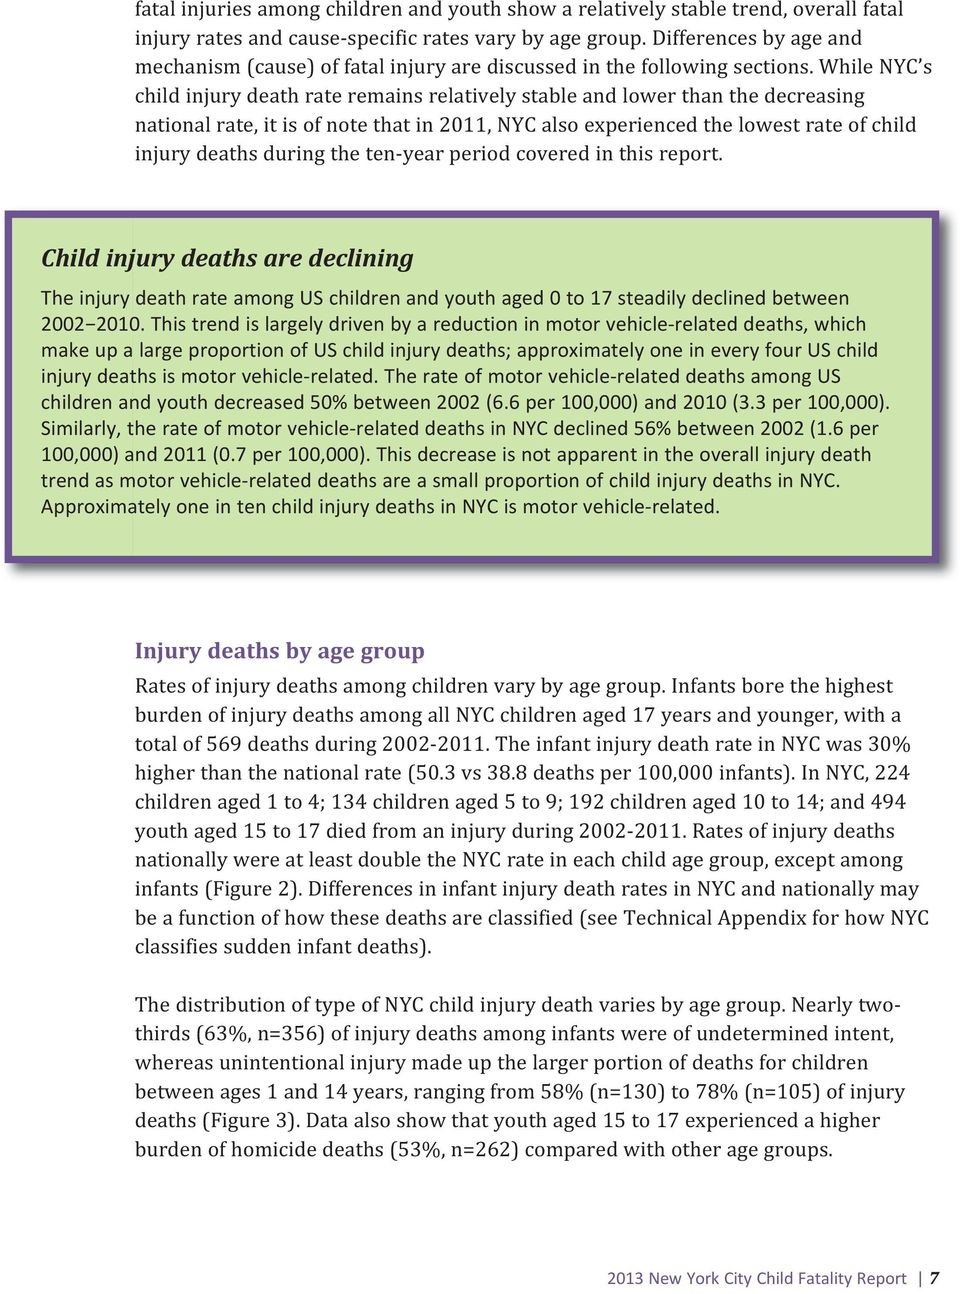 While NYC s child injury death rate remains relatively stable and lower than the decreasing national rate, it is of note that in 2011, NYC also experienced the lowest rate of child injury deaths